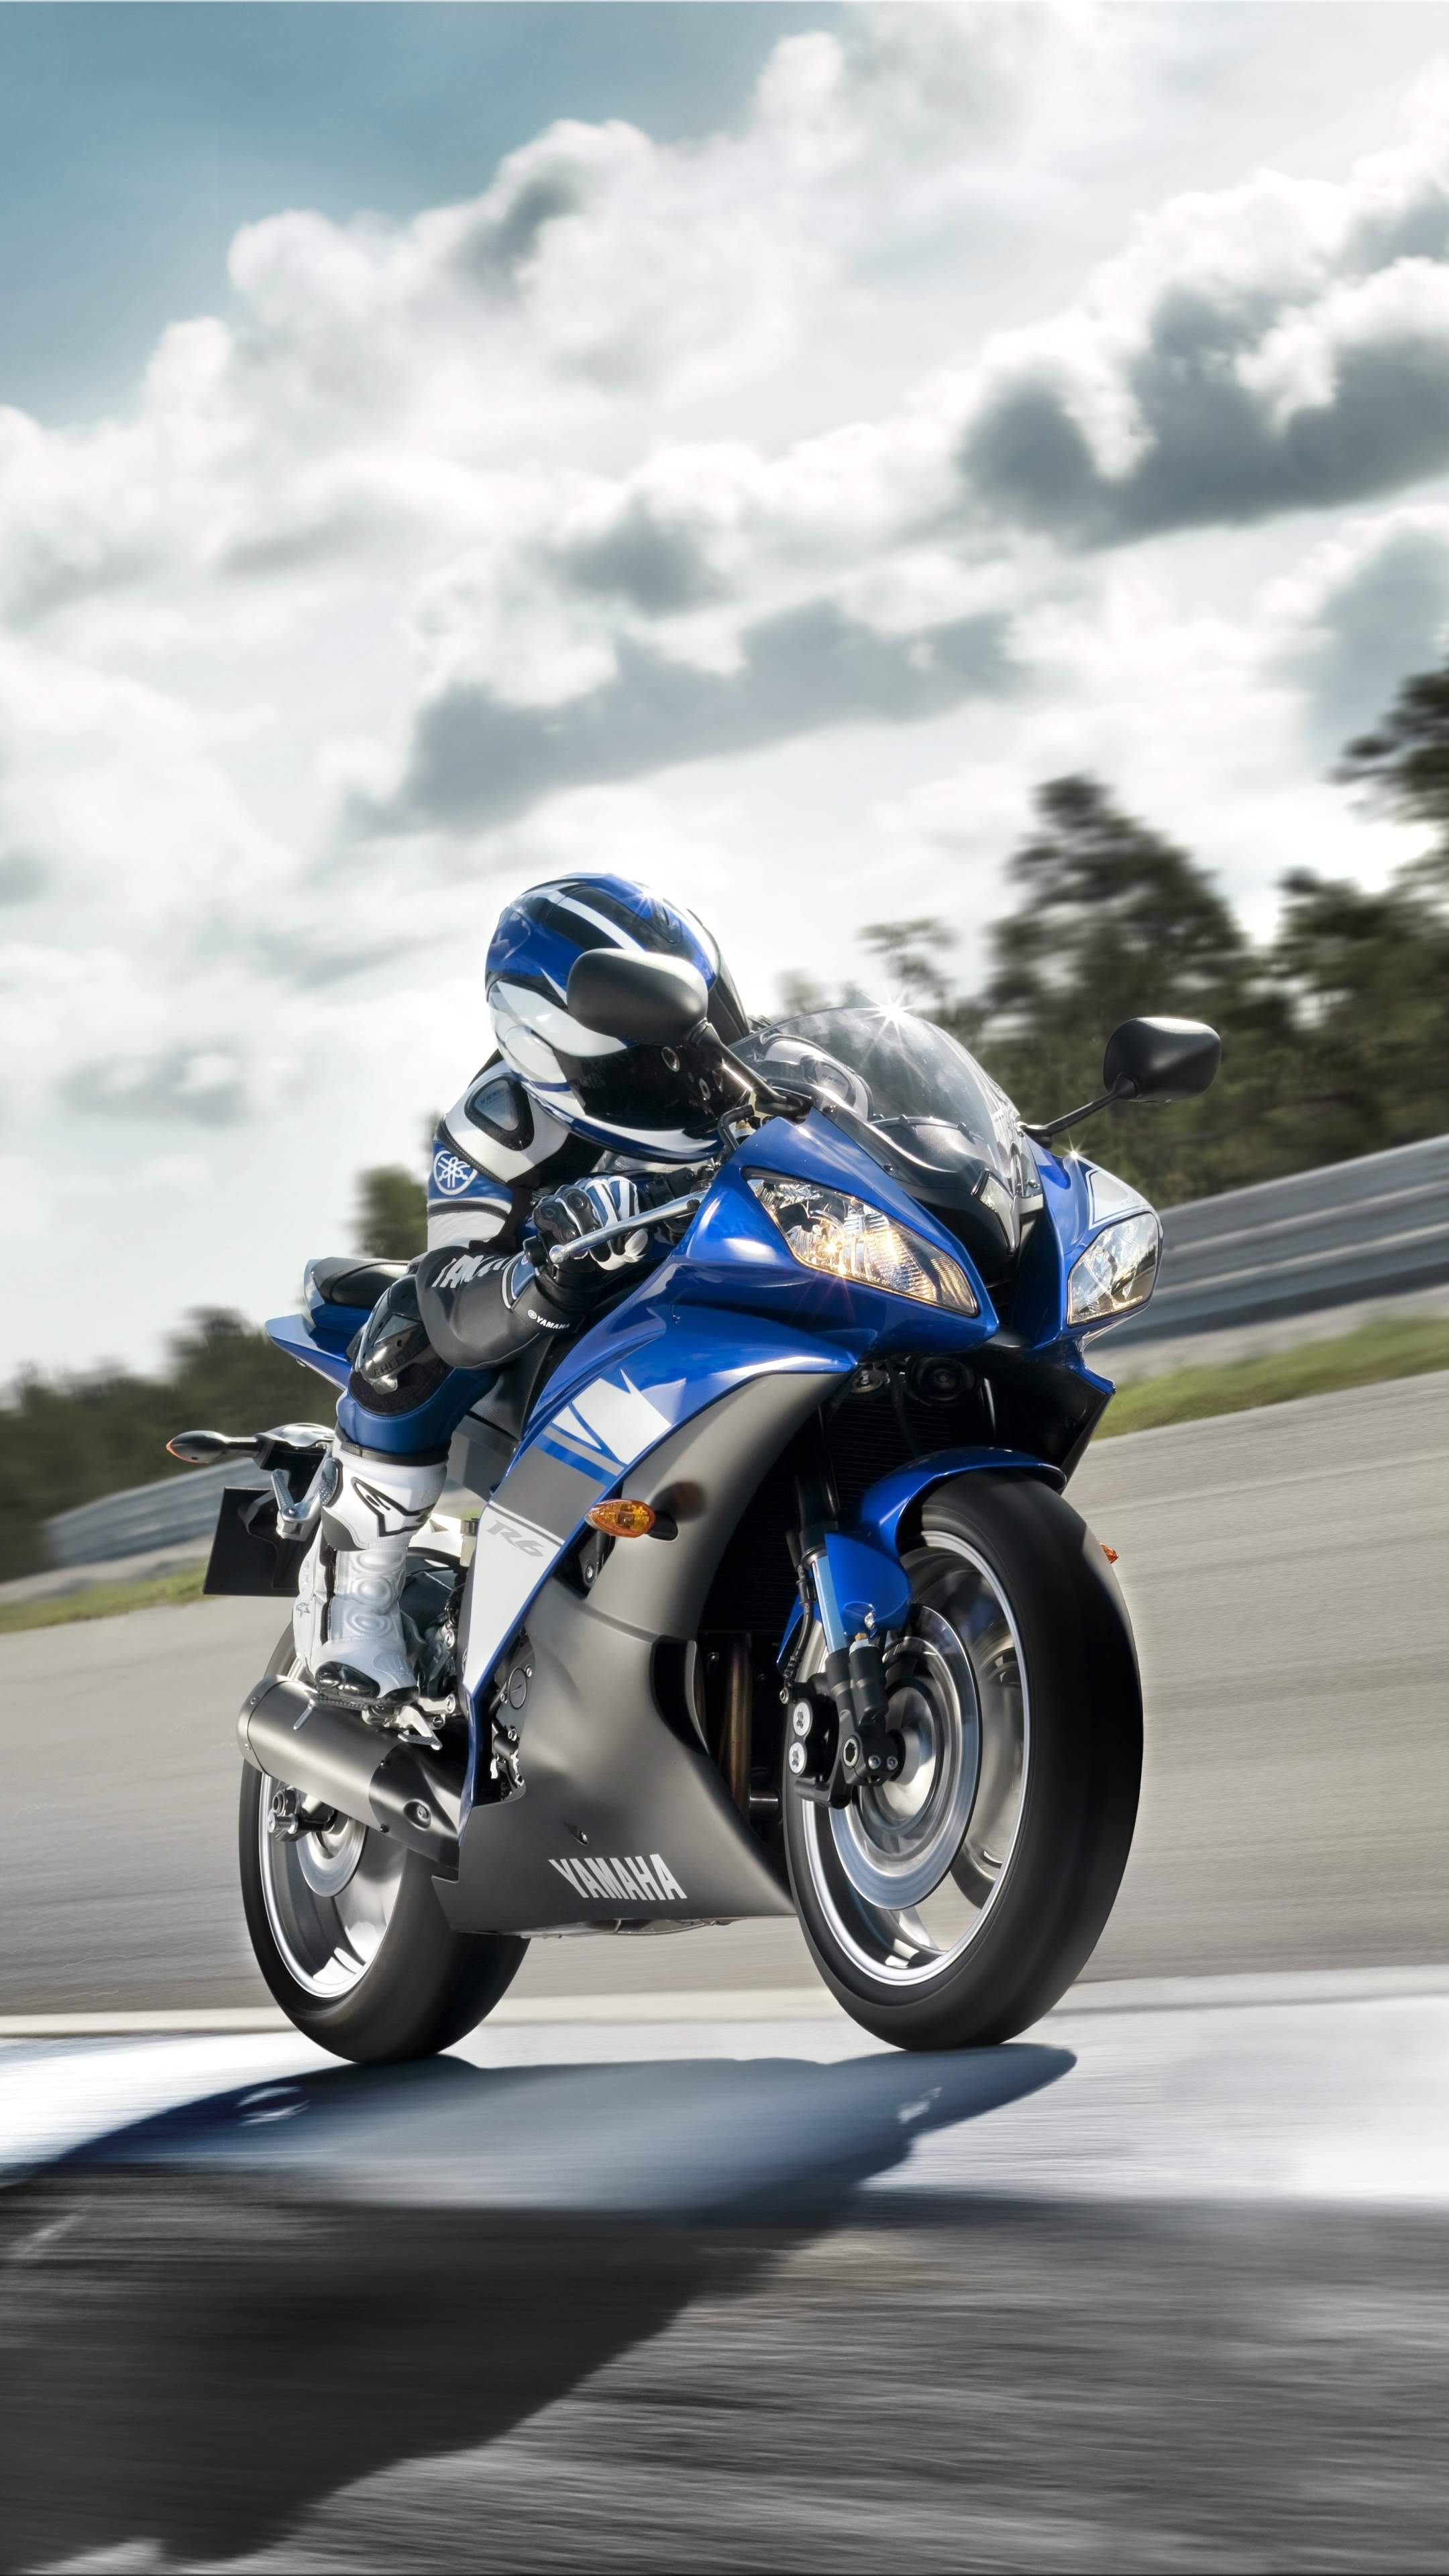 yamaha wallpaper iphone wwwpixsharkcom images